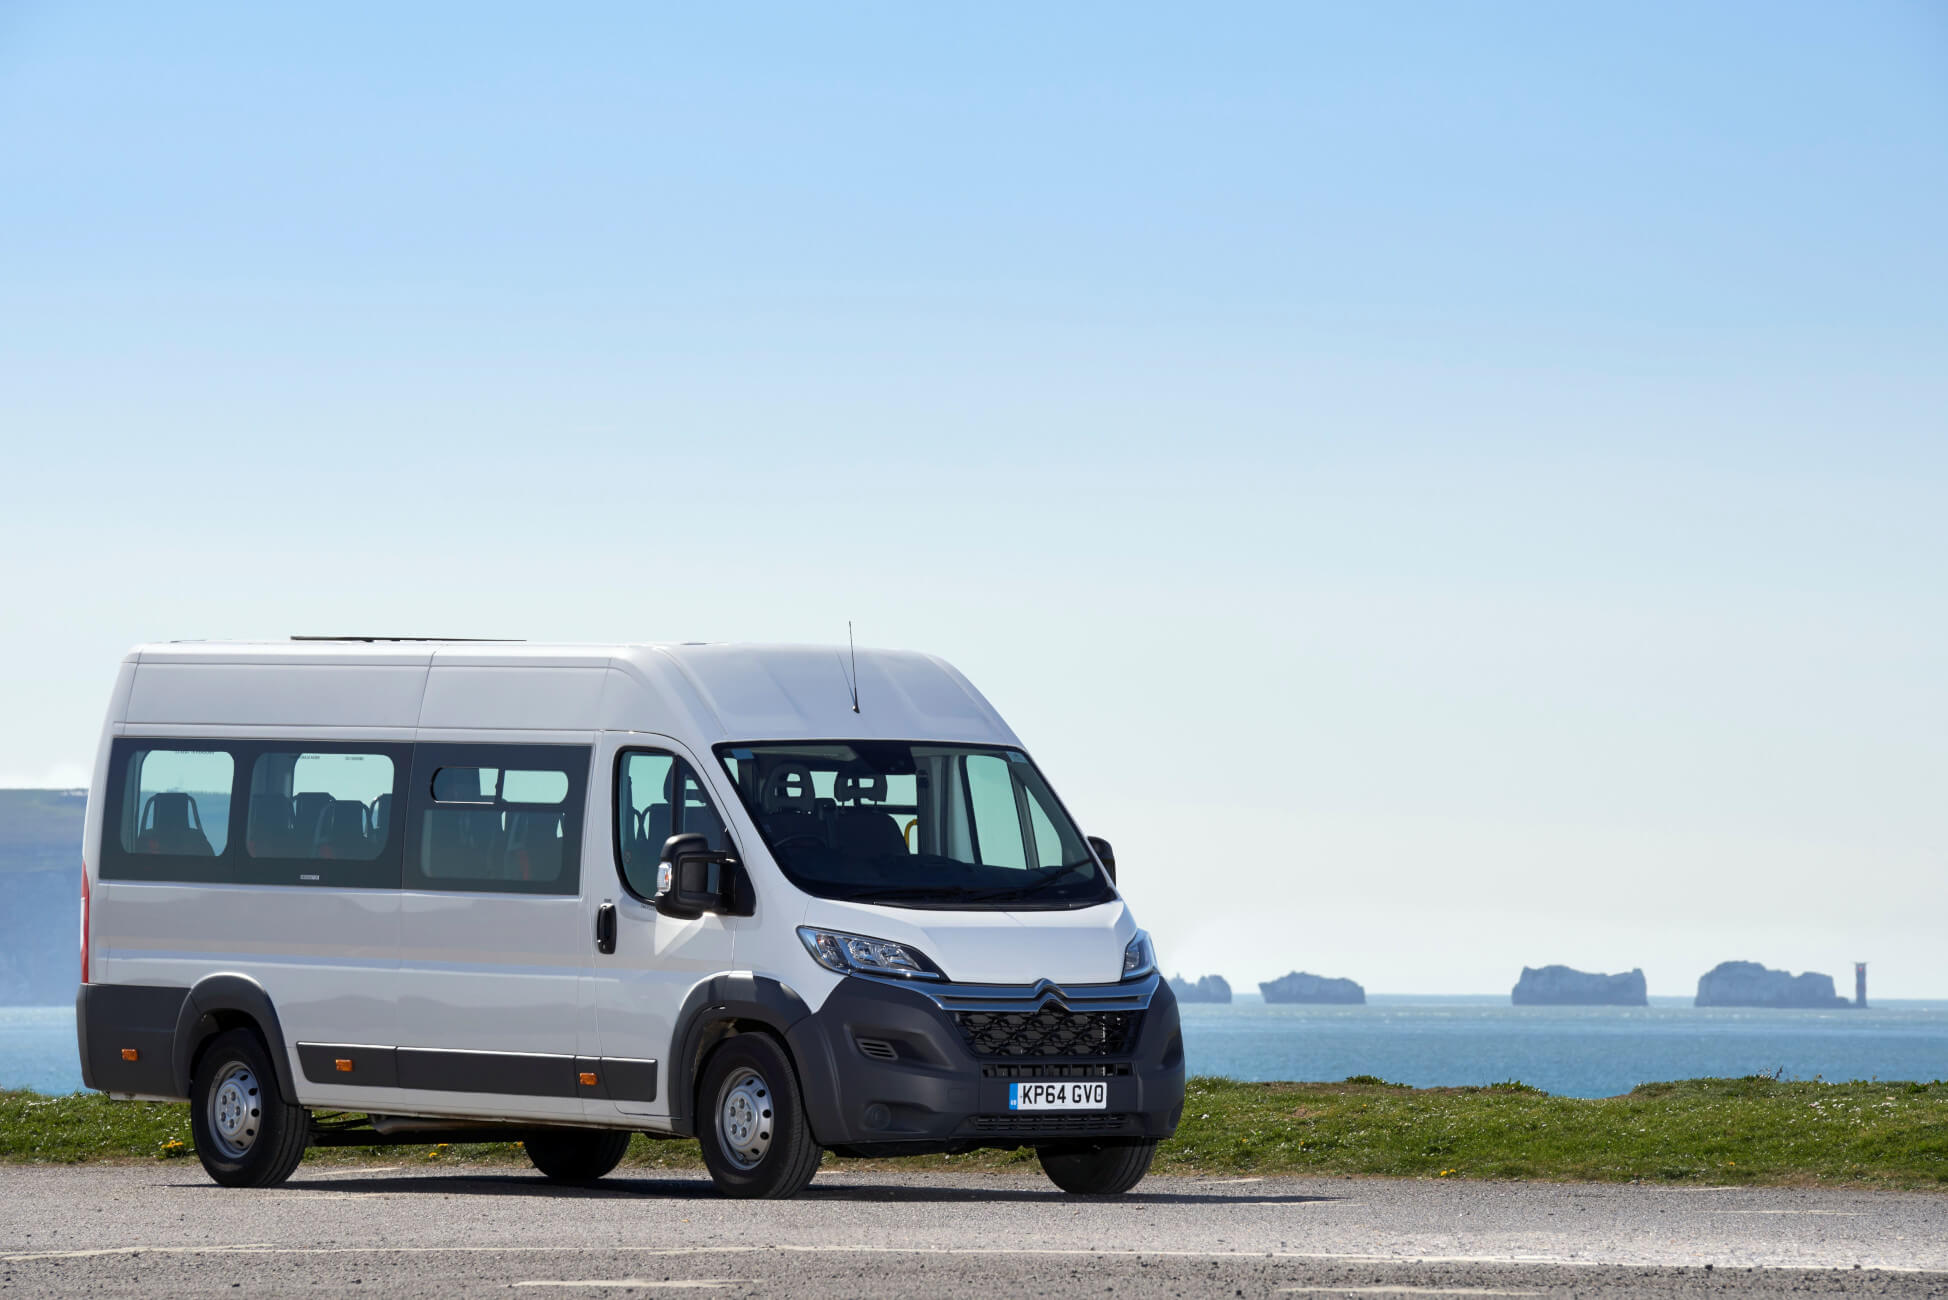 School minibuses – a safety guide